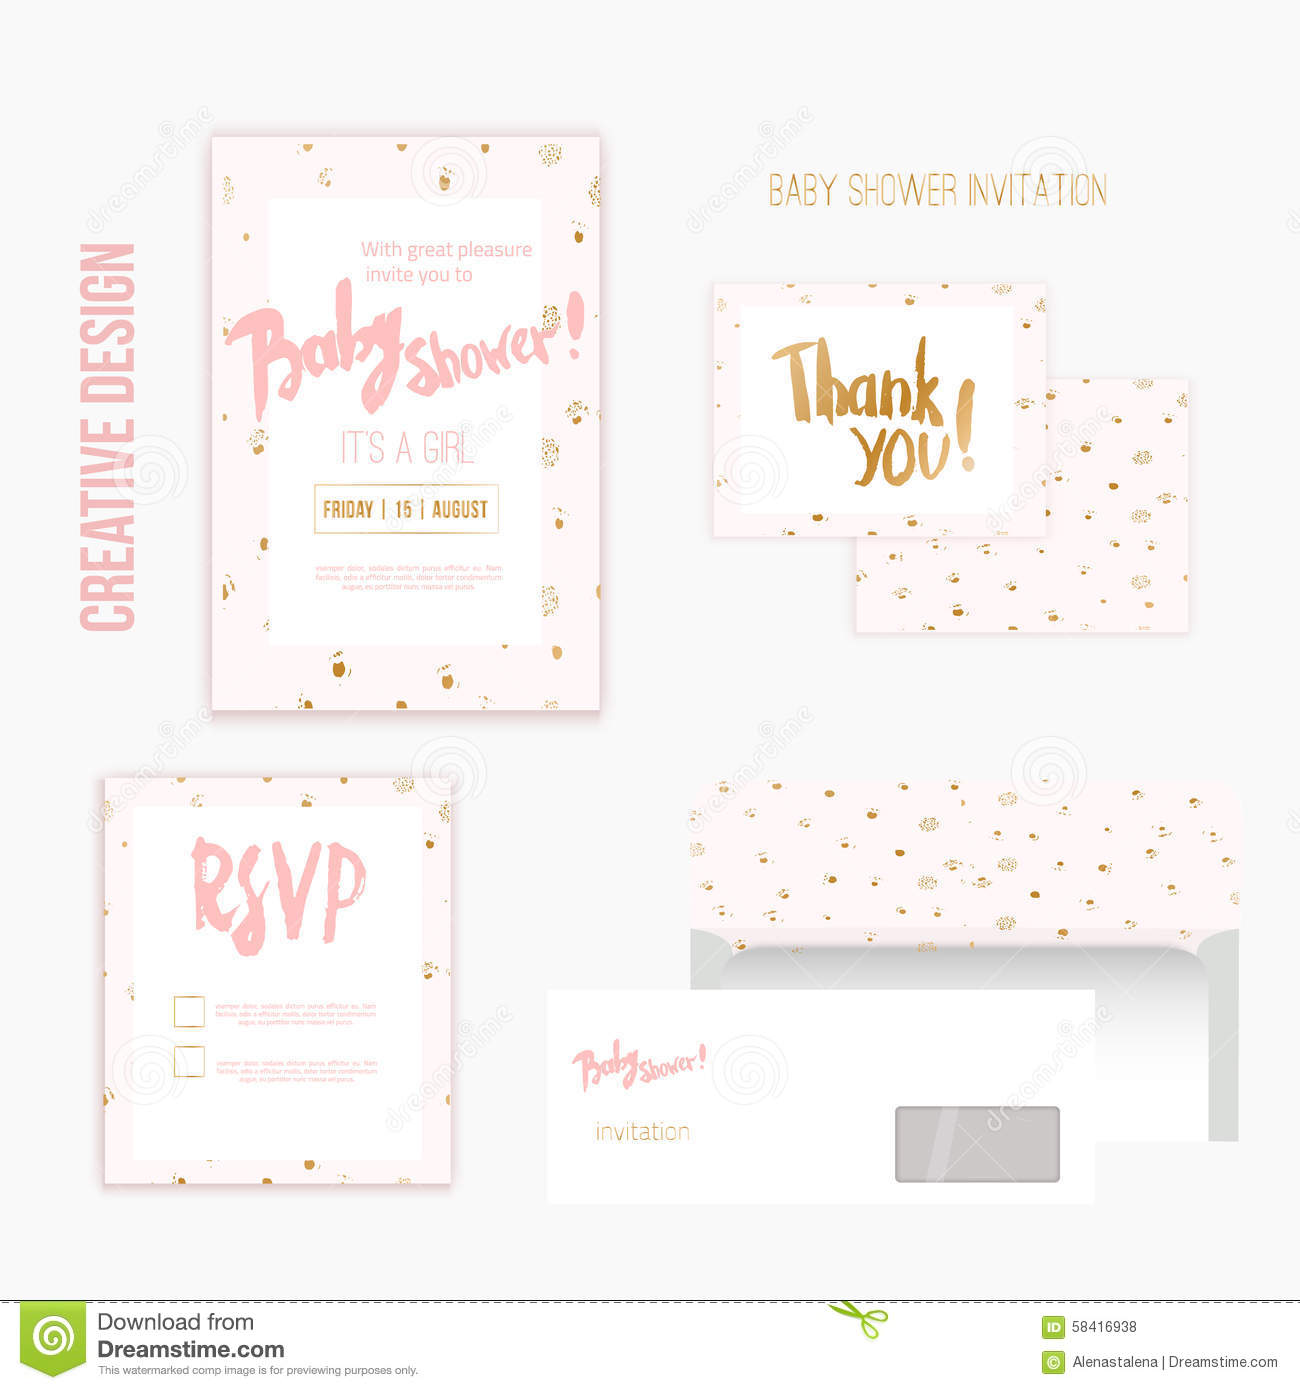 baby shower invitation template illustration with polka dot pattern